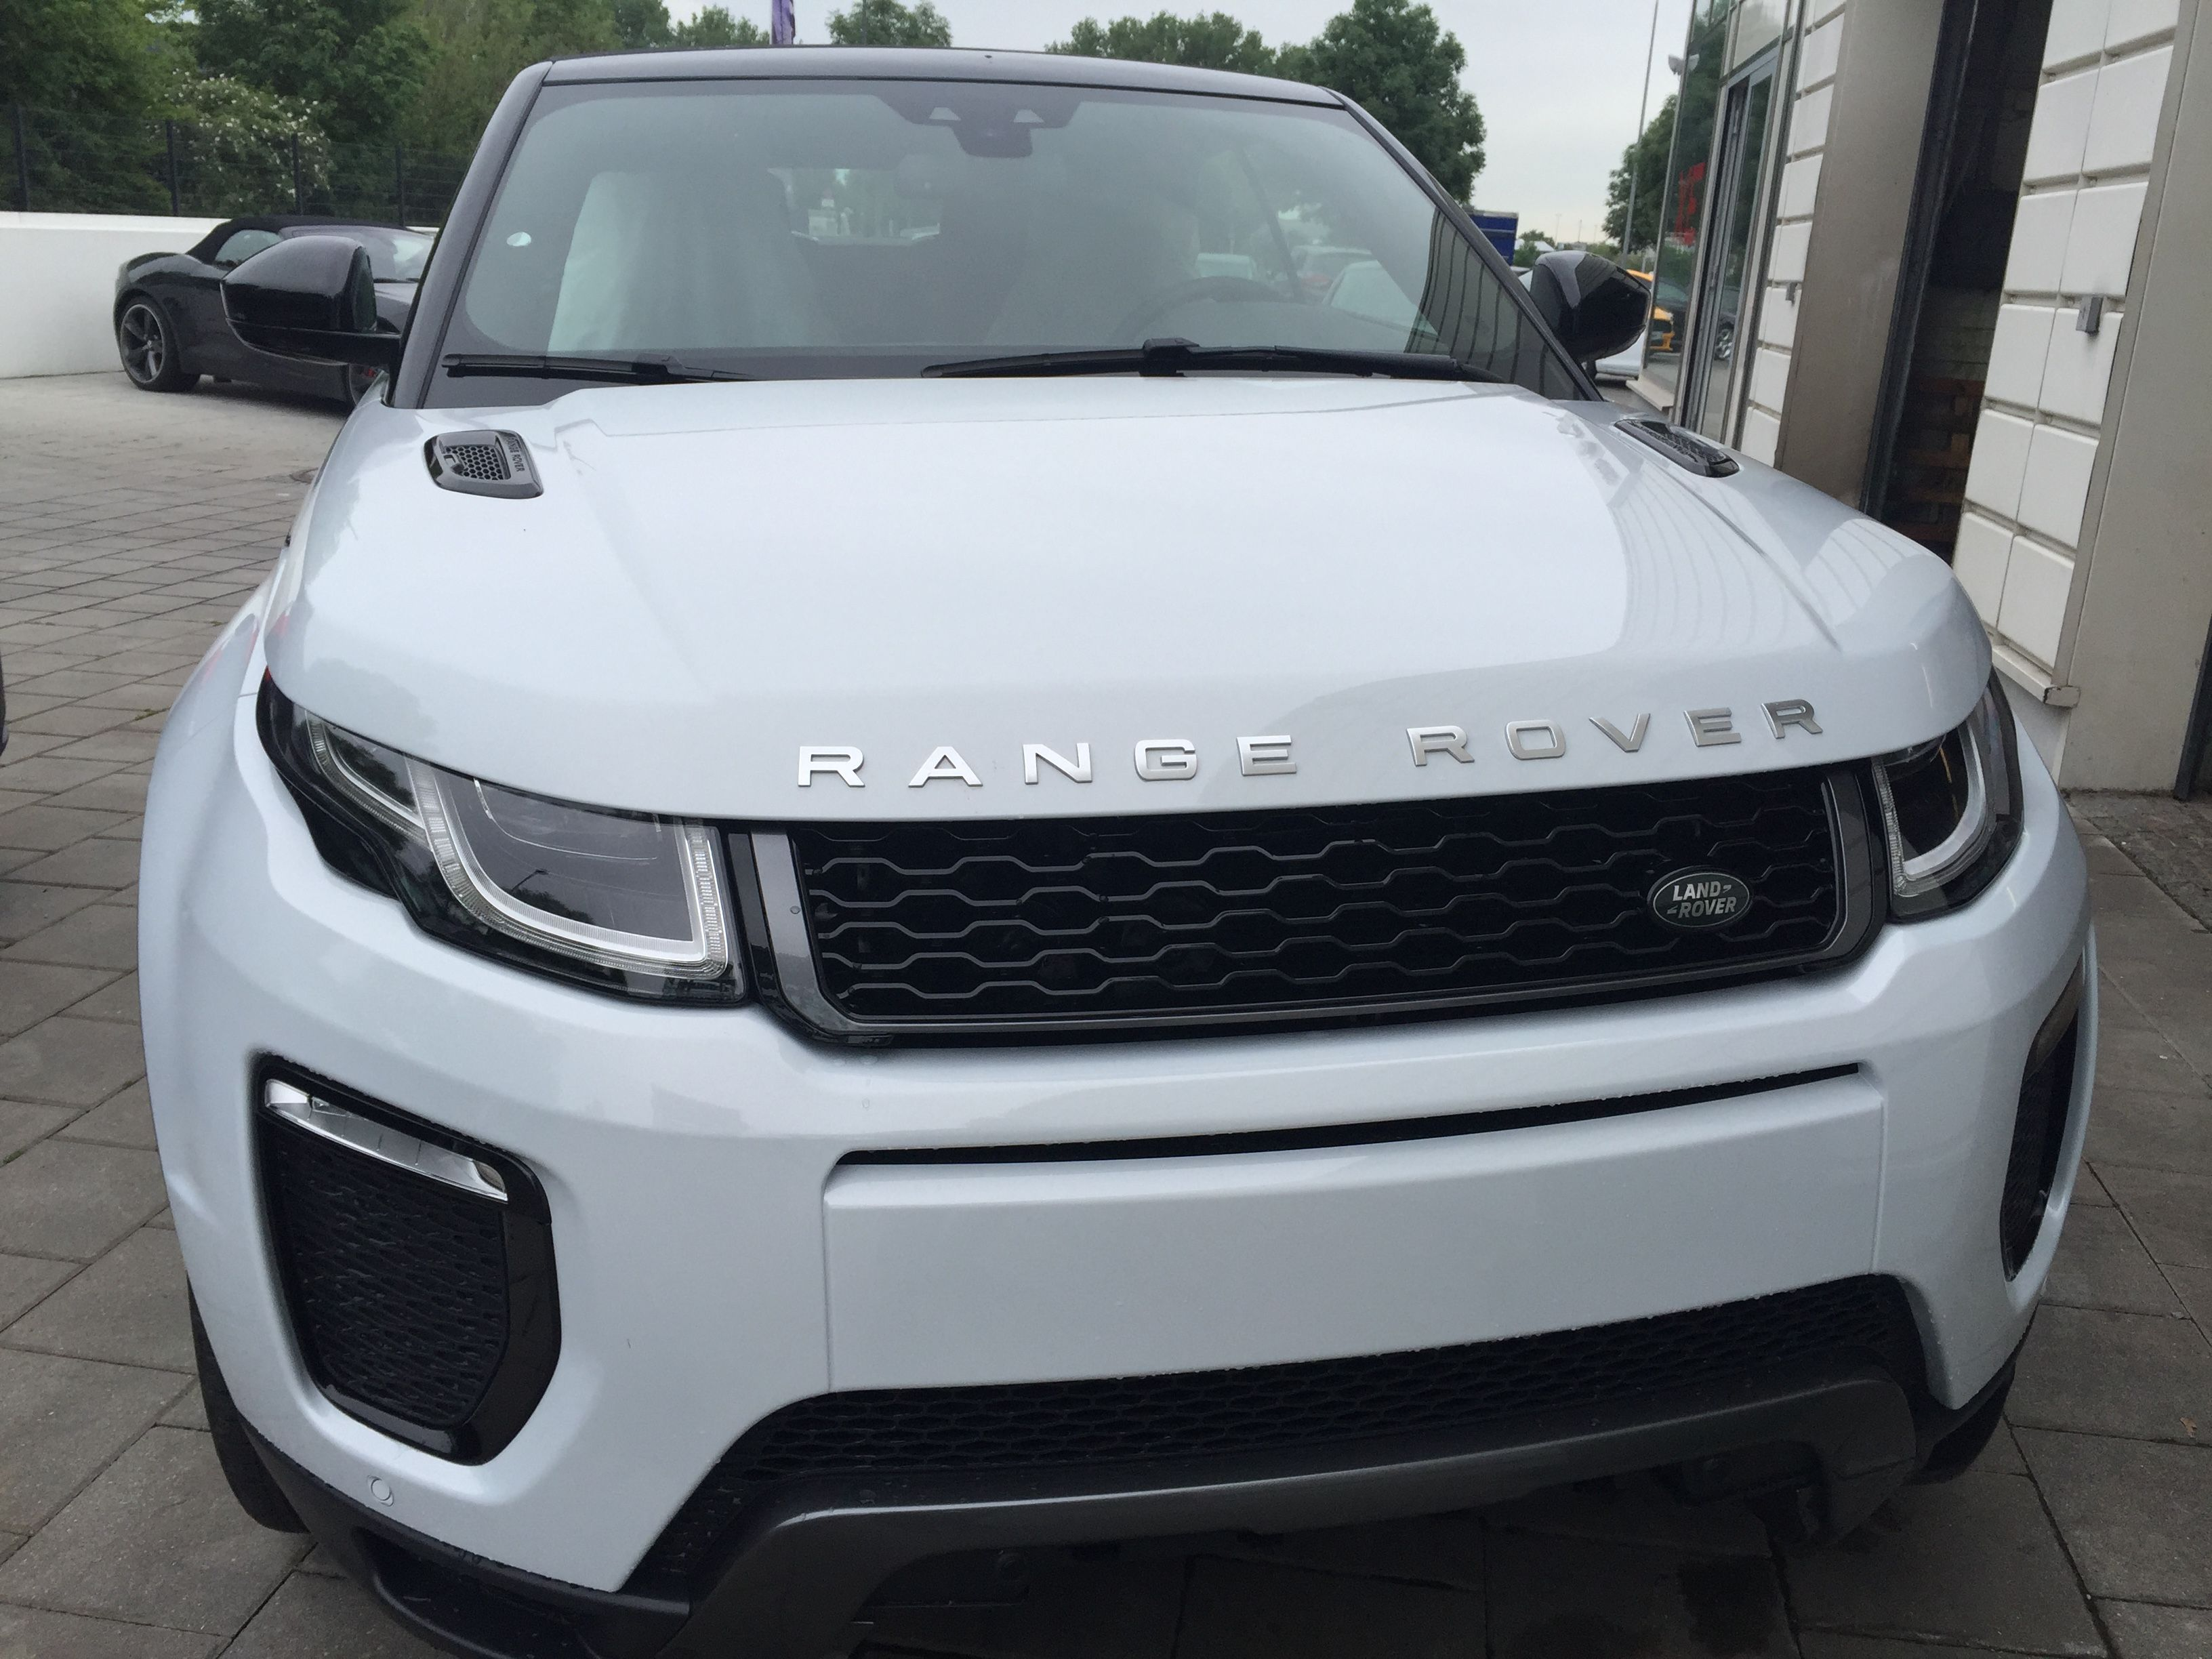 Range Rover Evoque Cabrio Wei White Fancy Ride Pinterest